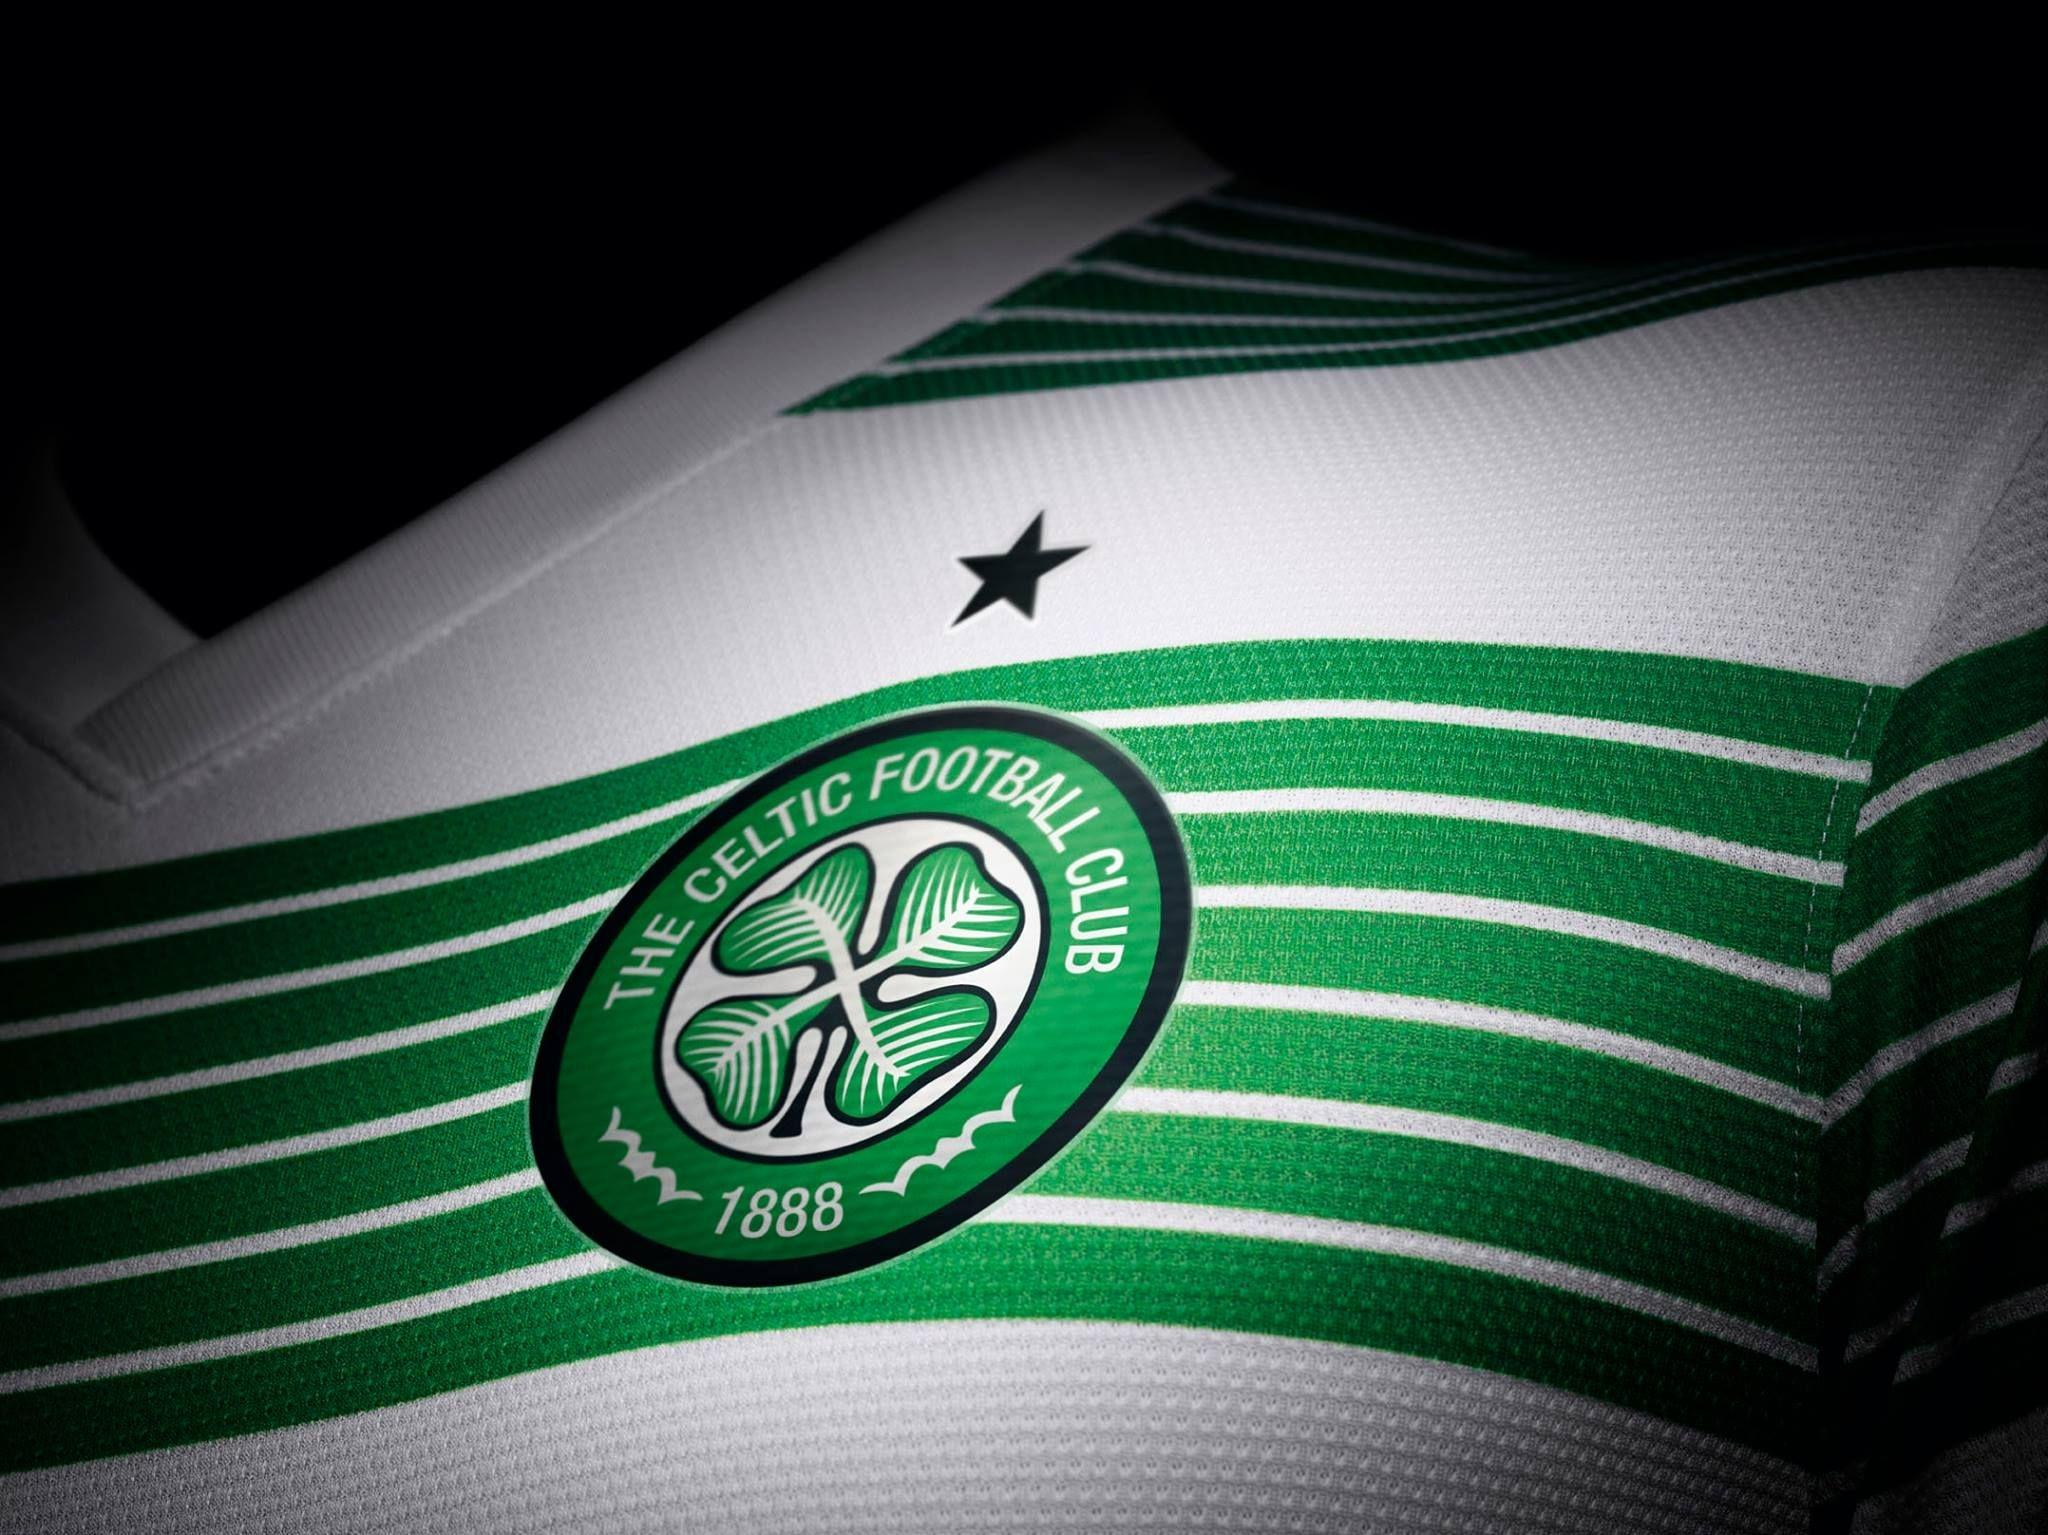 Elegant Celtic Fc Live Wallpapers